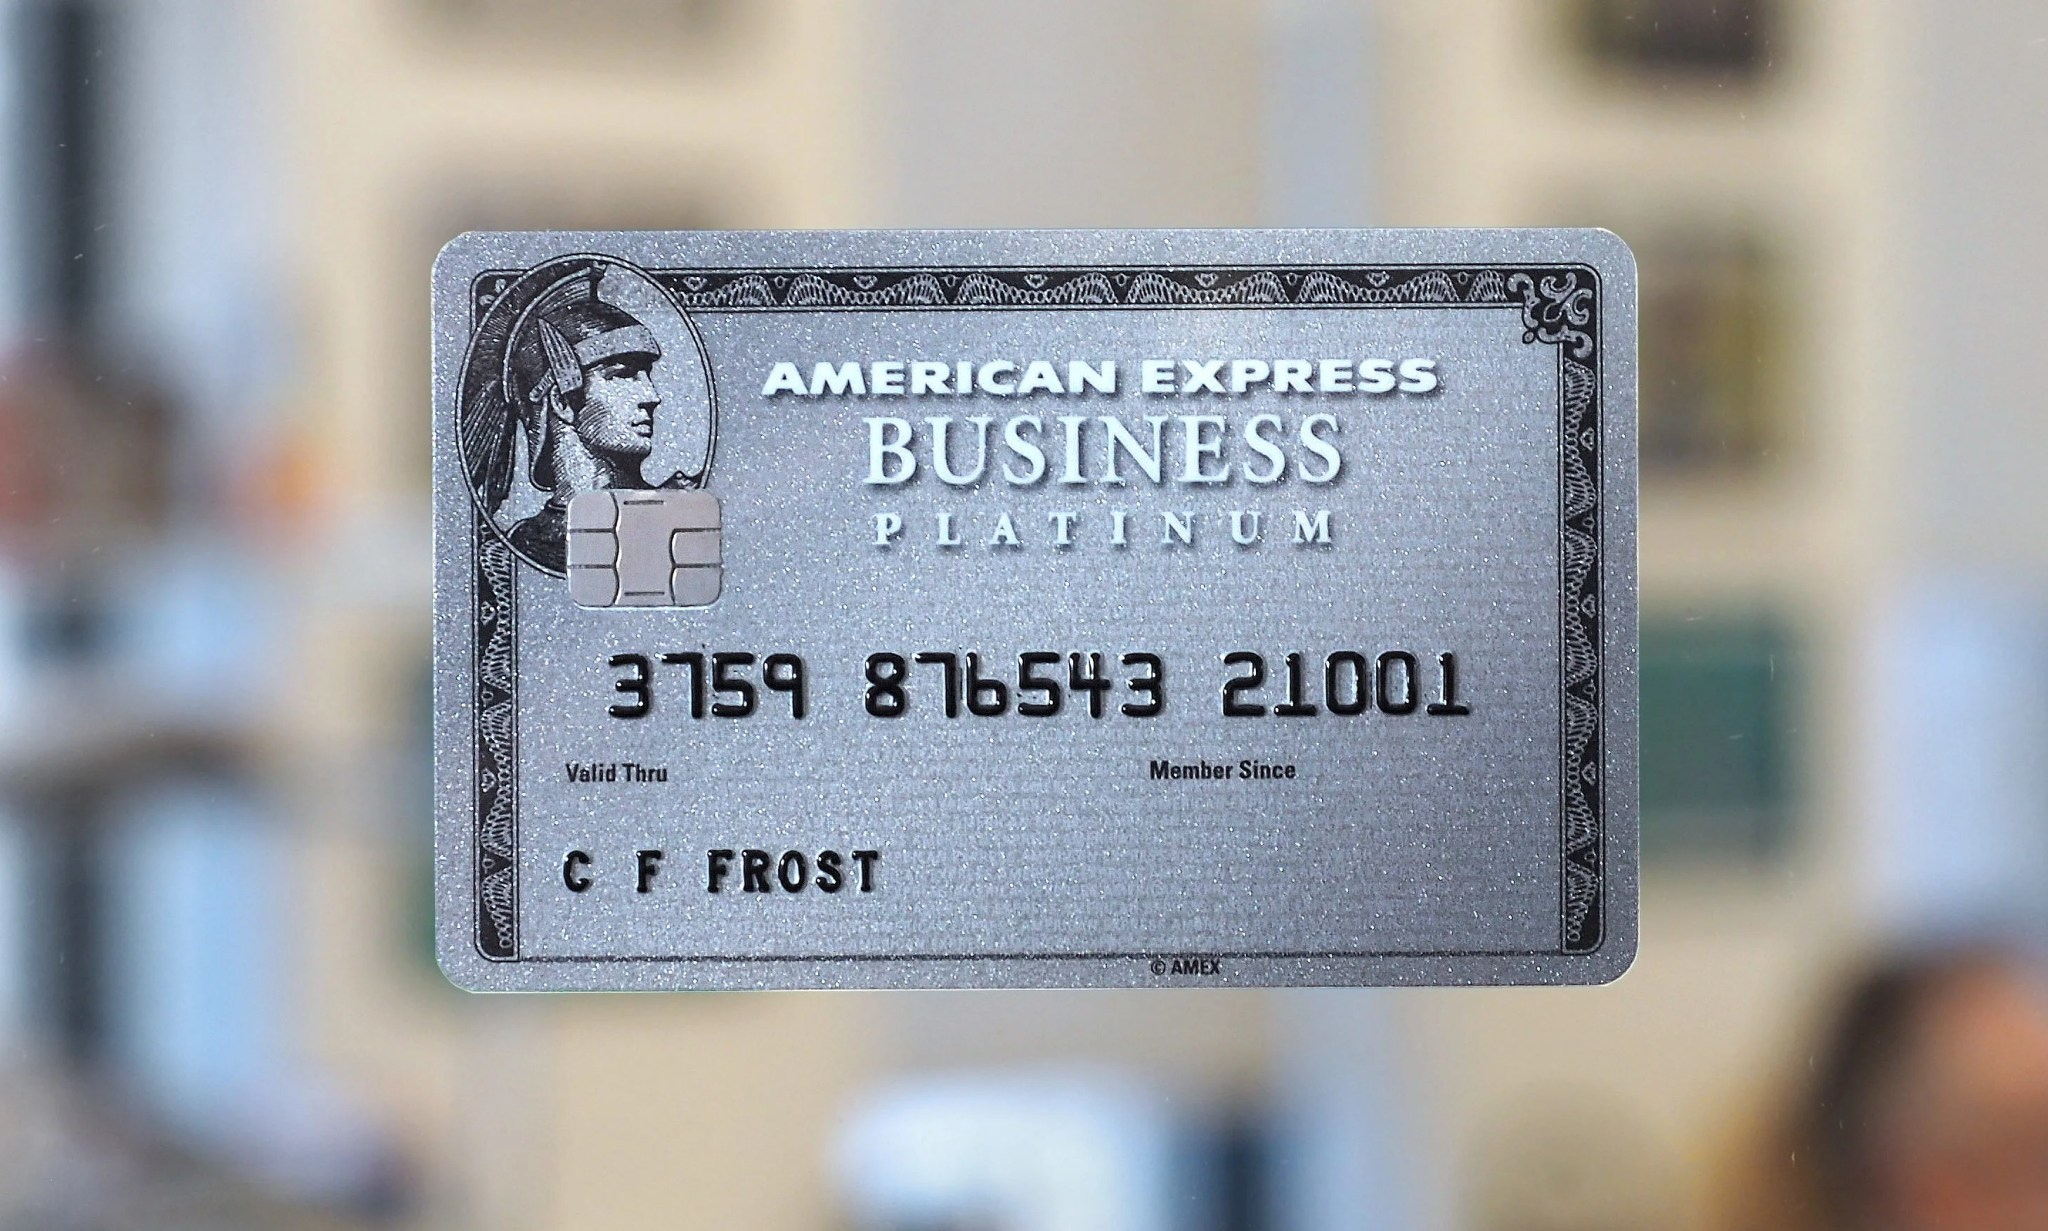 Business Card Size Inches Business Platinum Card Benefits